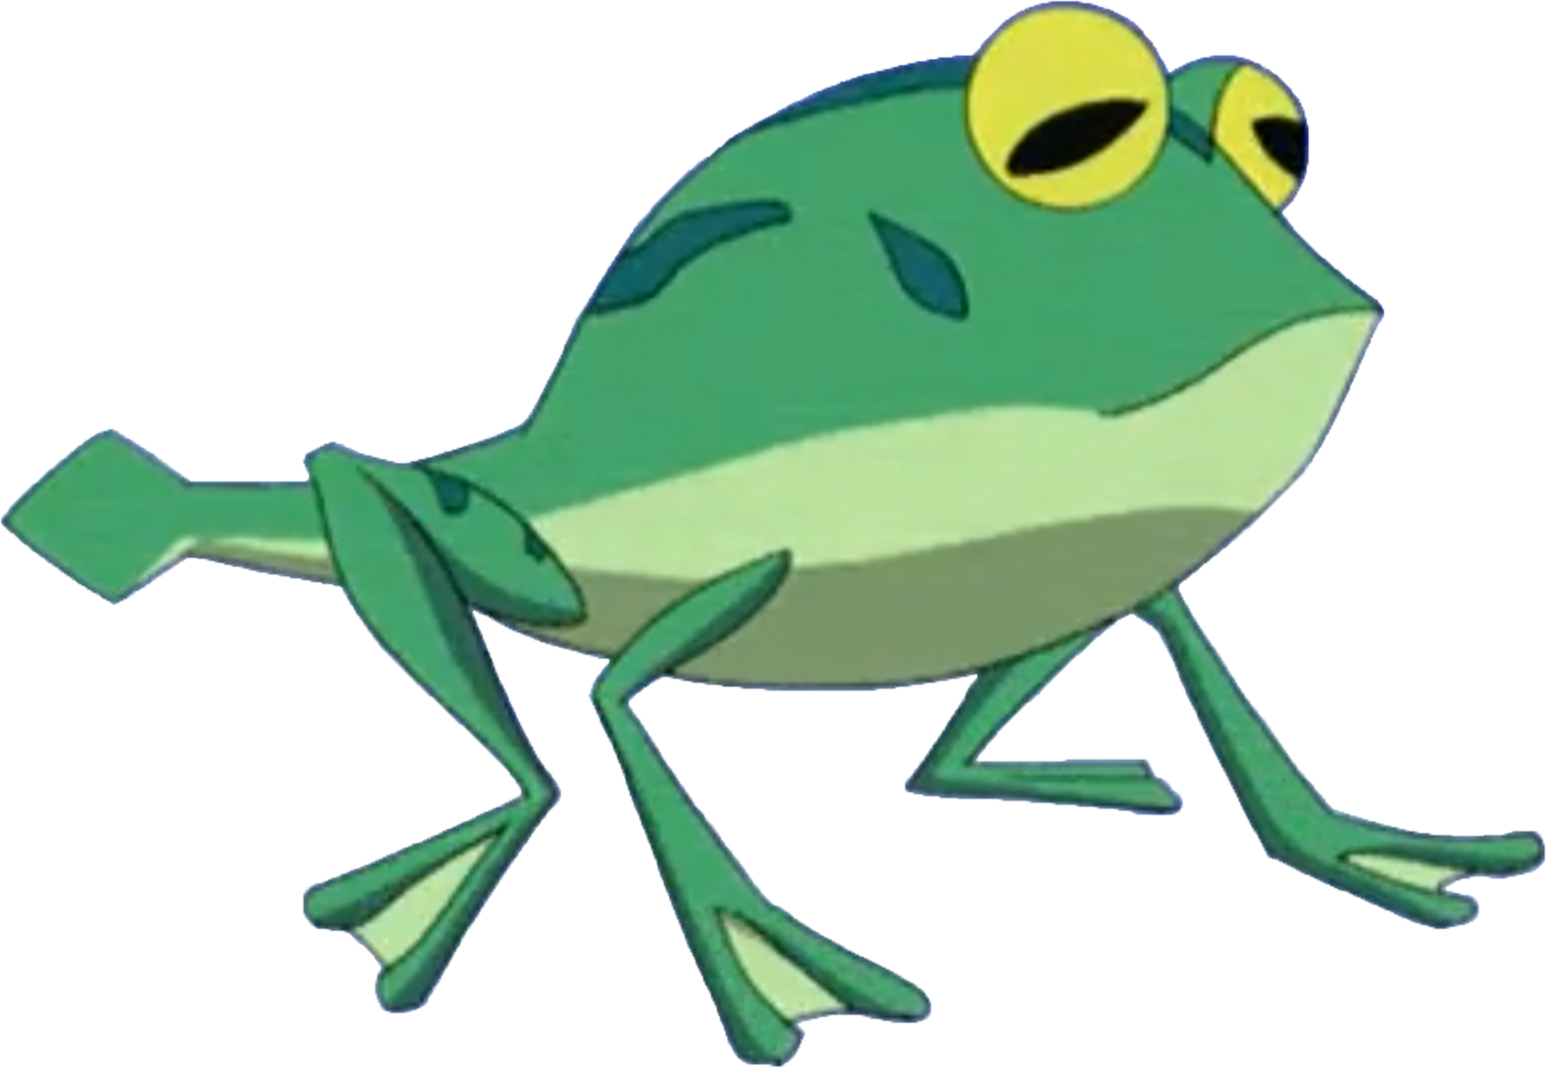 New and Improved Big and Froggy by Jimma1300 on DeviantArt